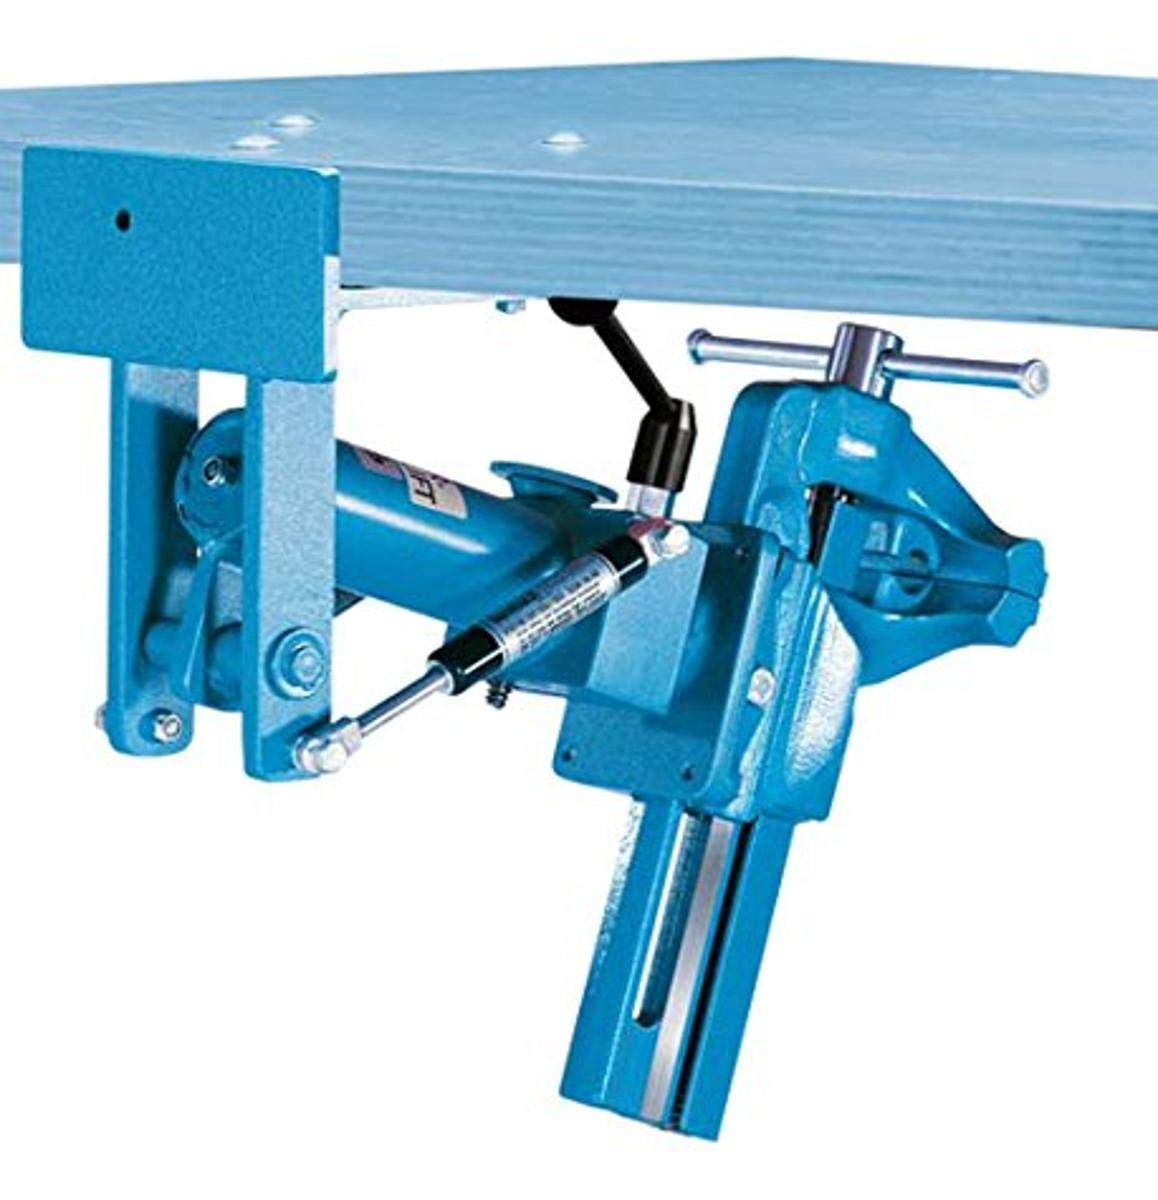 Heck Industries VCLH106120 Heuer Collapsible Lift Fold and Stow Fixture, Forged Steel, Blue